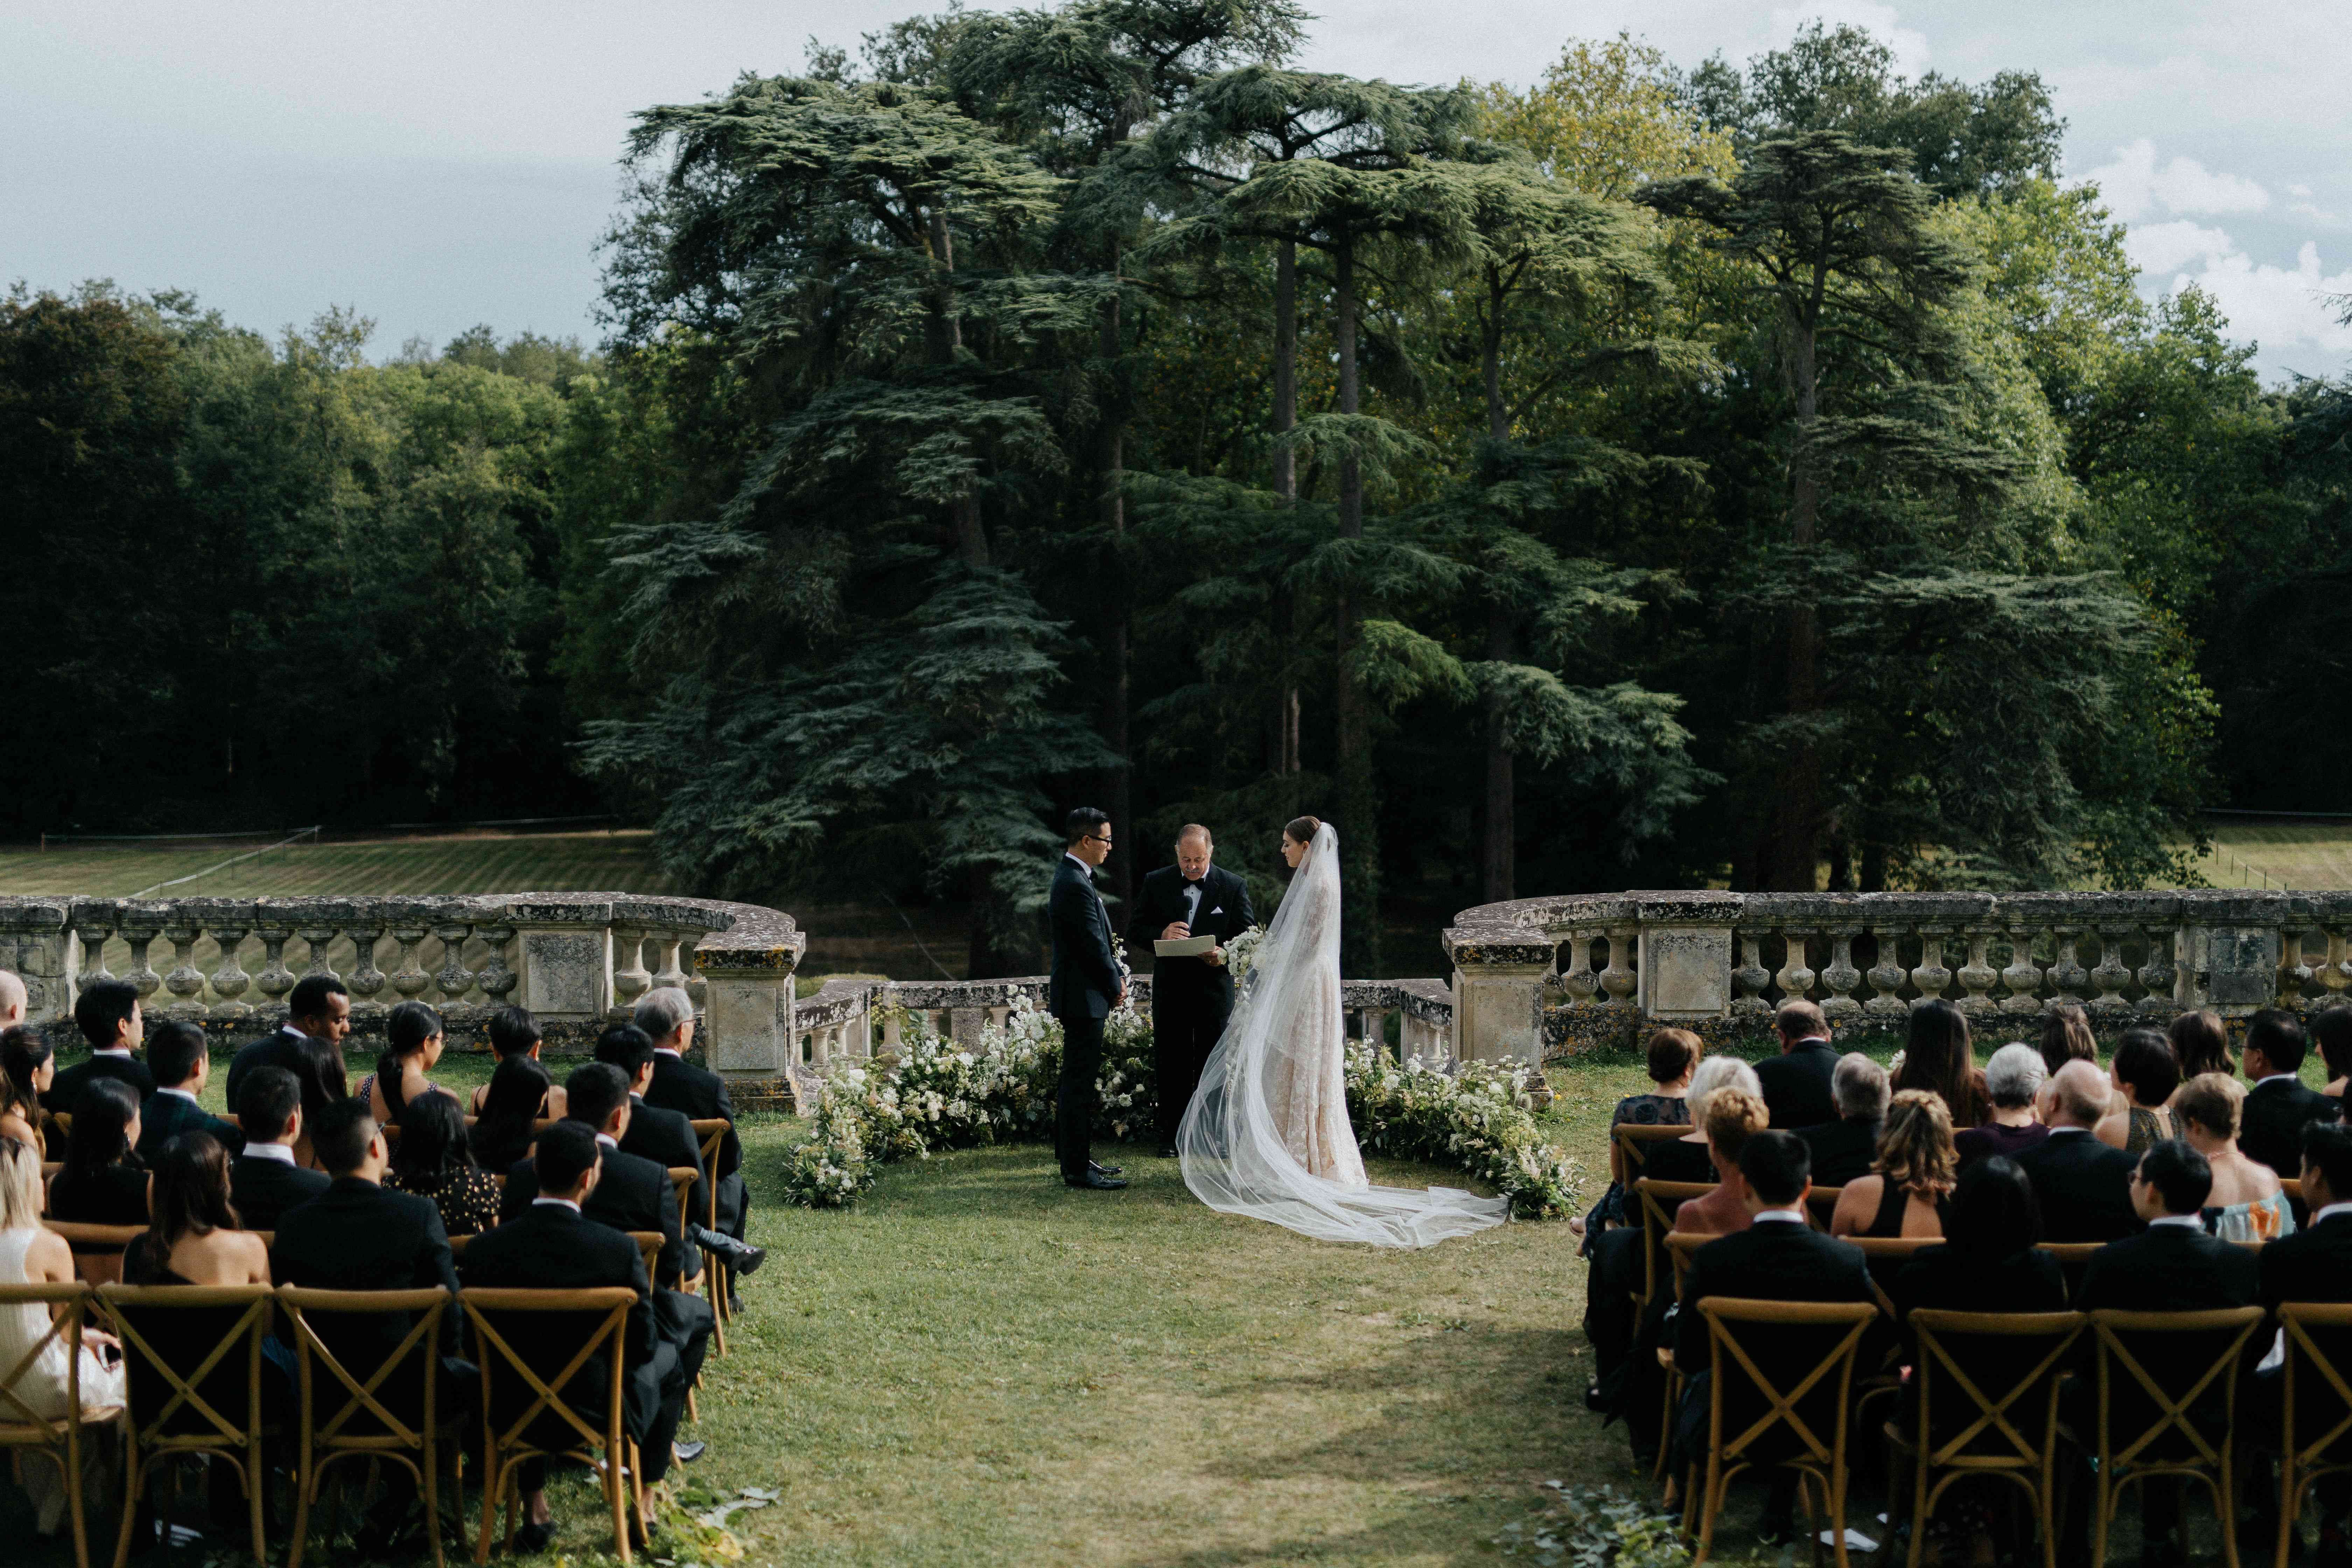 <p>couple at altar outdoor wedding</p><br><br>